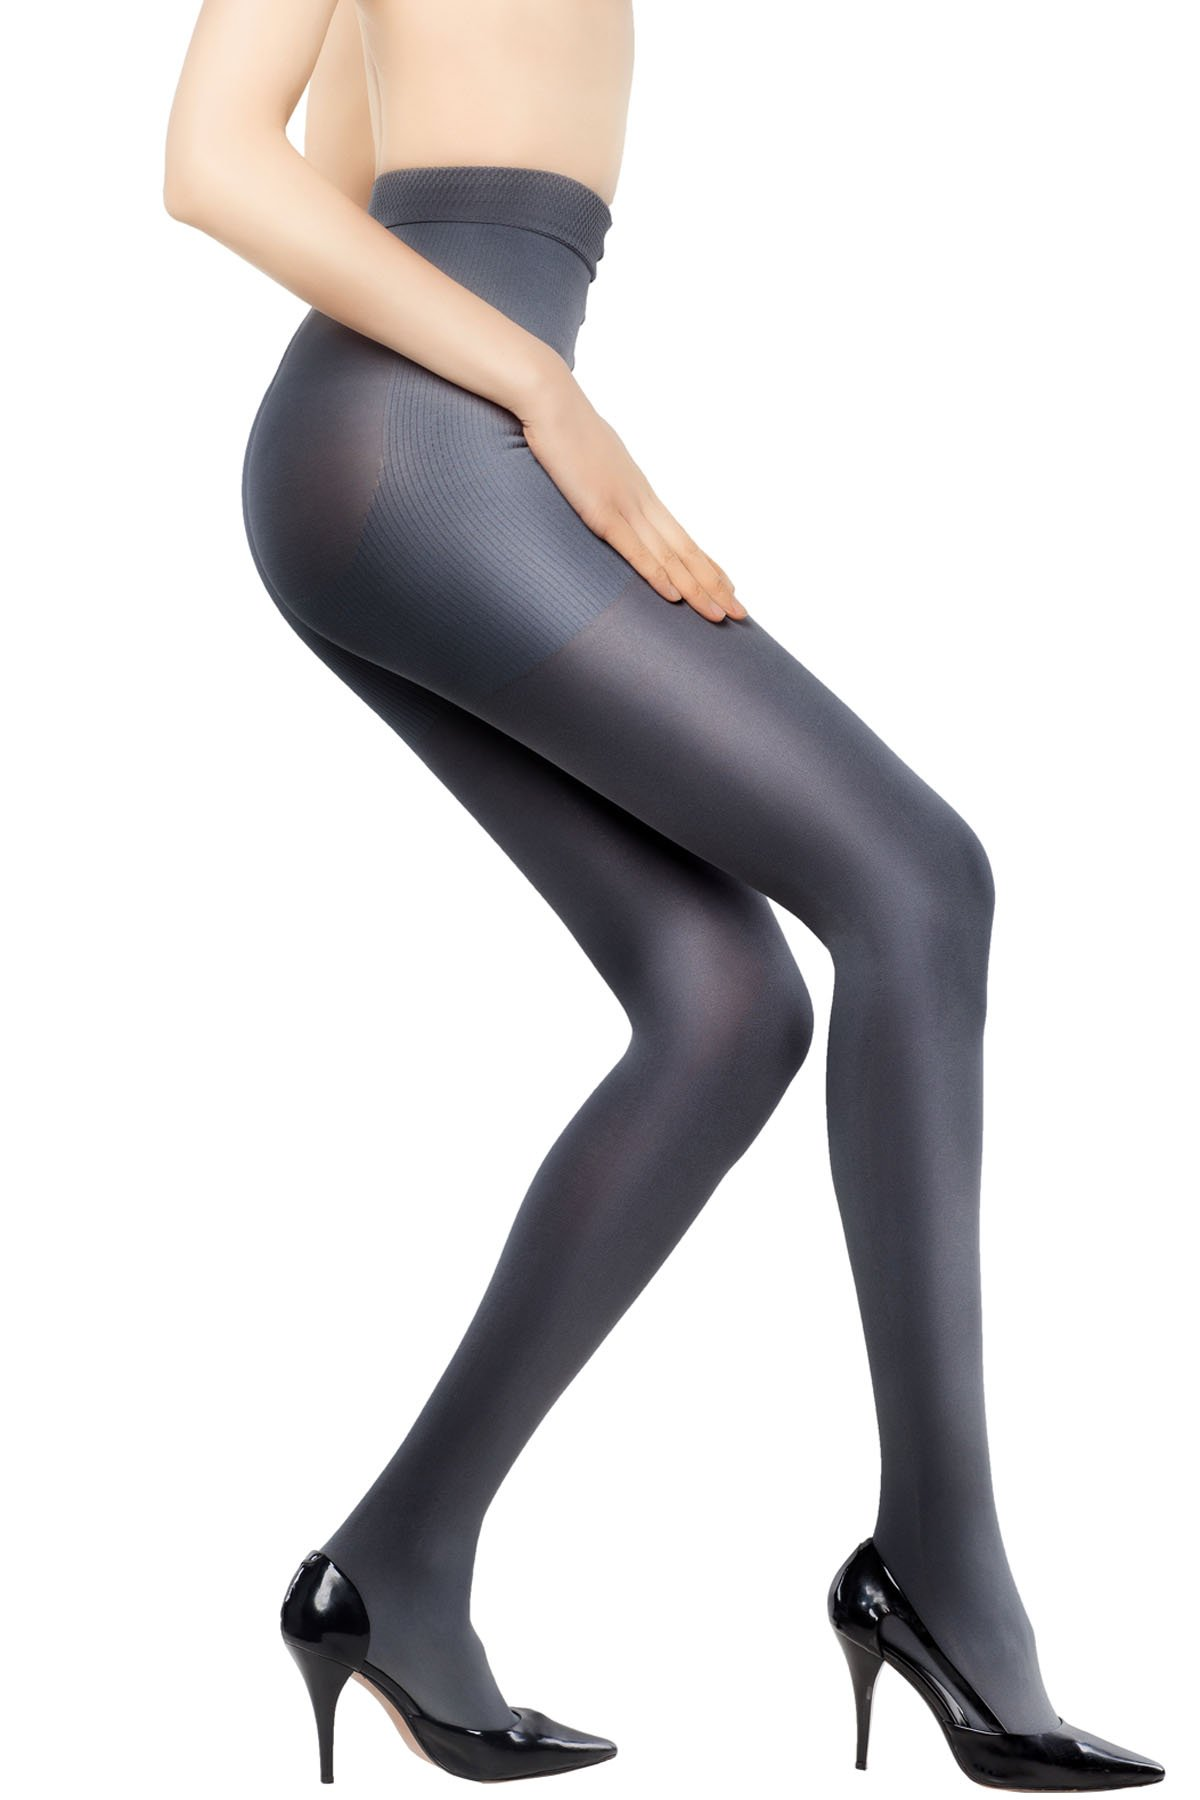 +MD 15-20mmHg Women's Graduated Compression Pantyhose Medical Quality Ladies Support Stocking DarkGray S